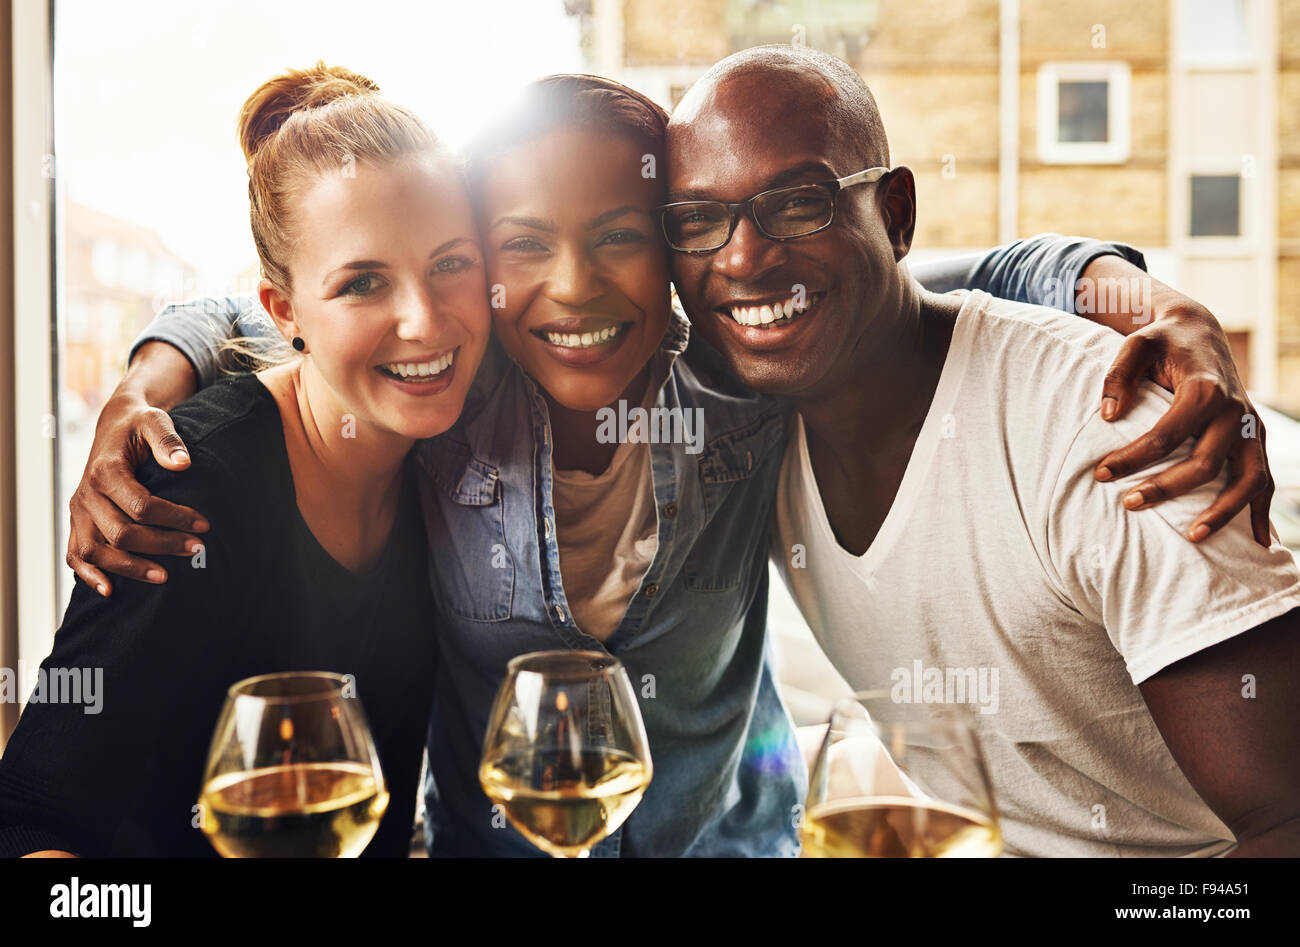 Three ethnic best friends smiling at camera and hugging - Stock Image